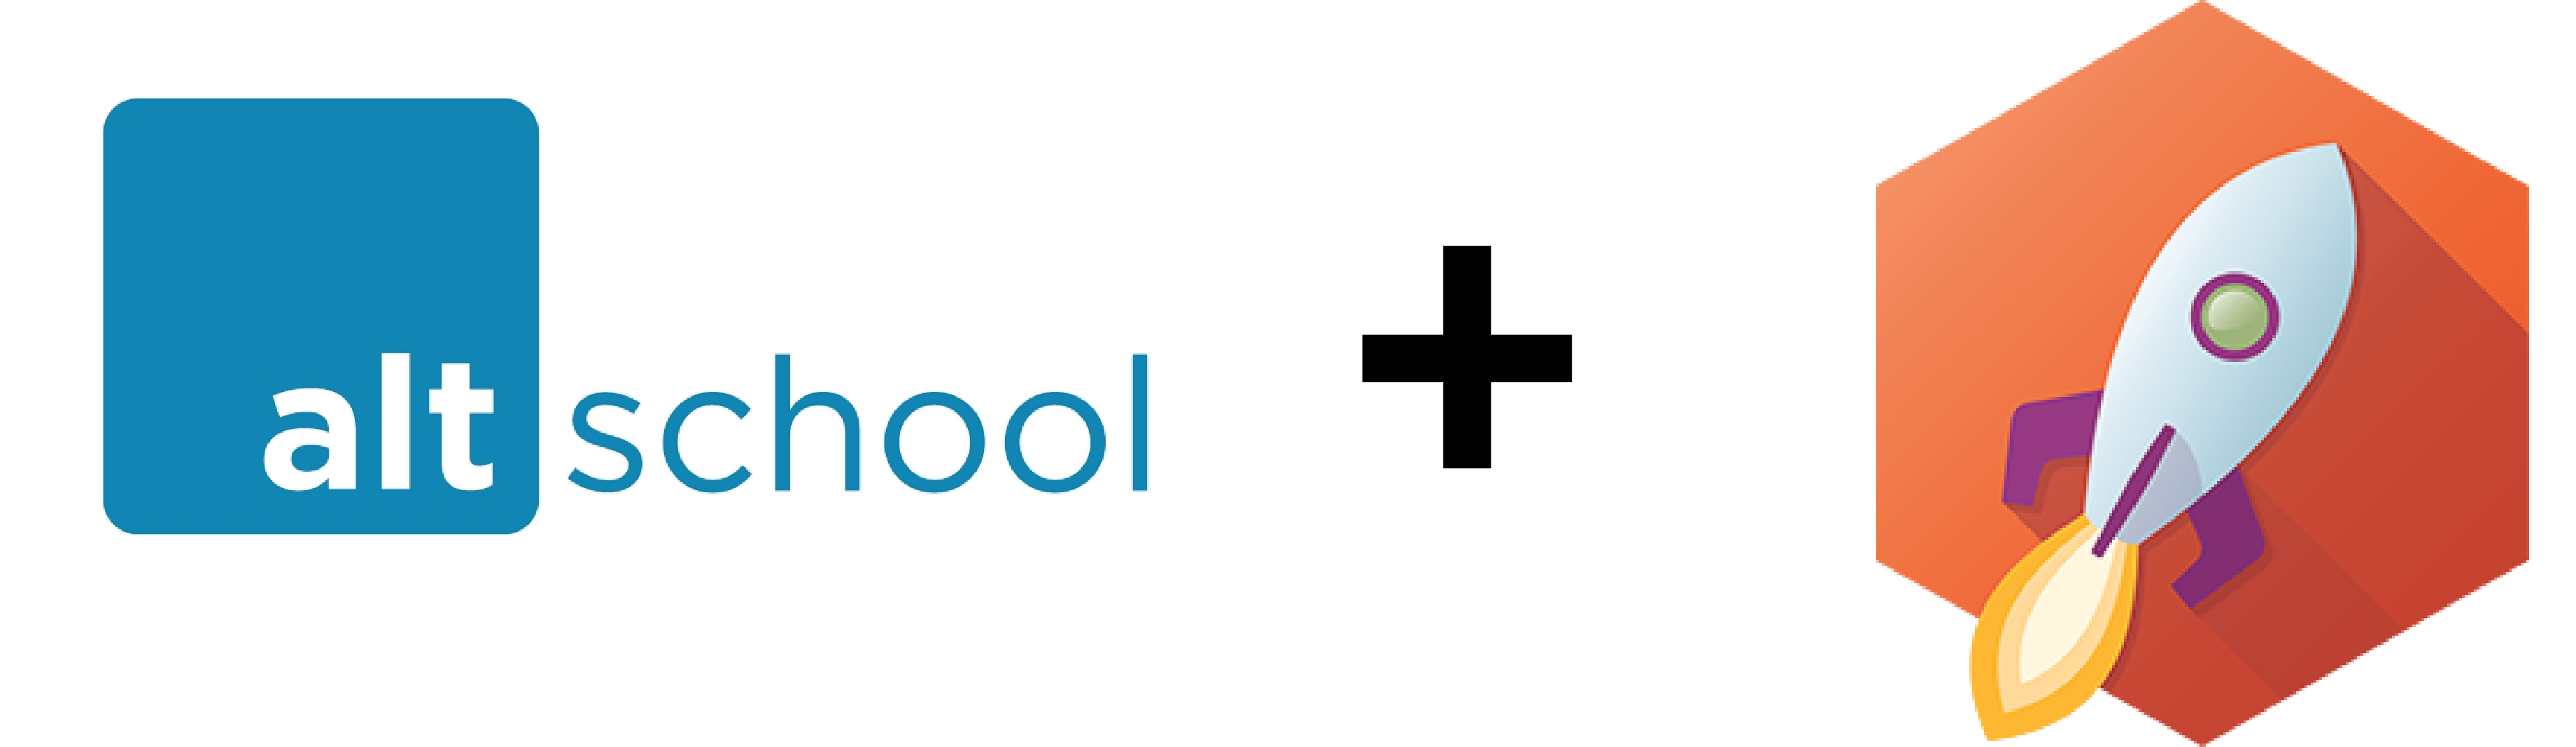 Altschool comes to pier 9 autodesk project ignite blog alt and pi biocorpaavc Image collections